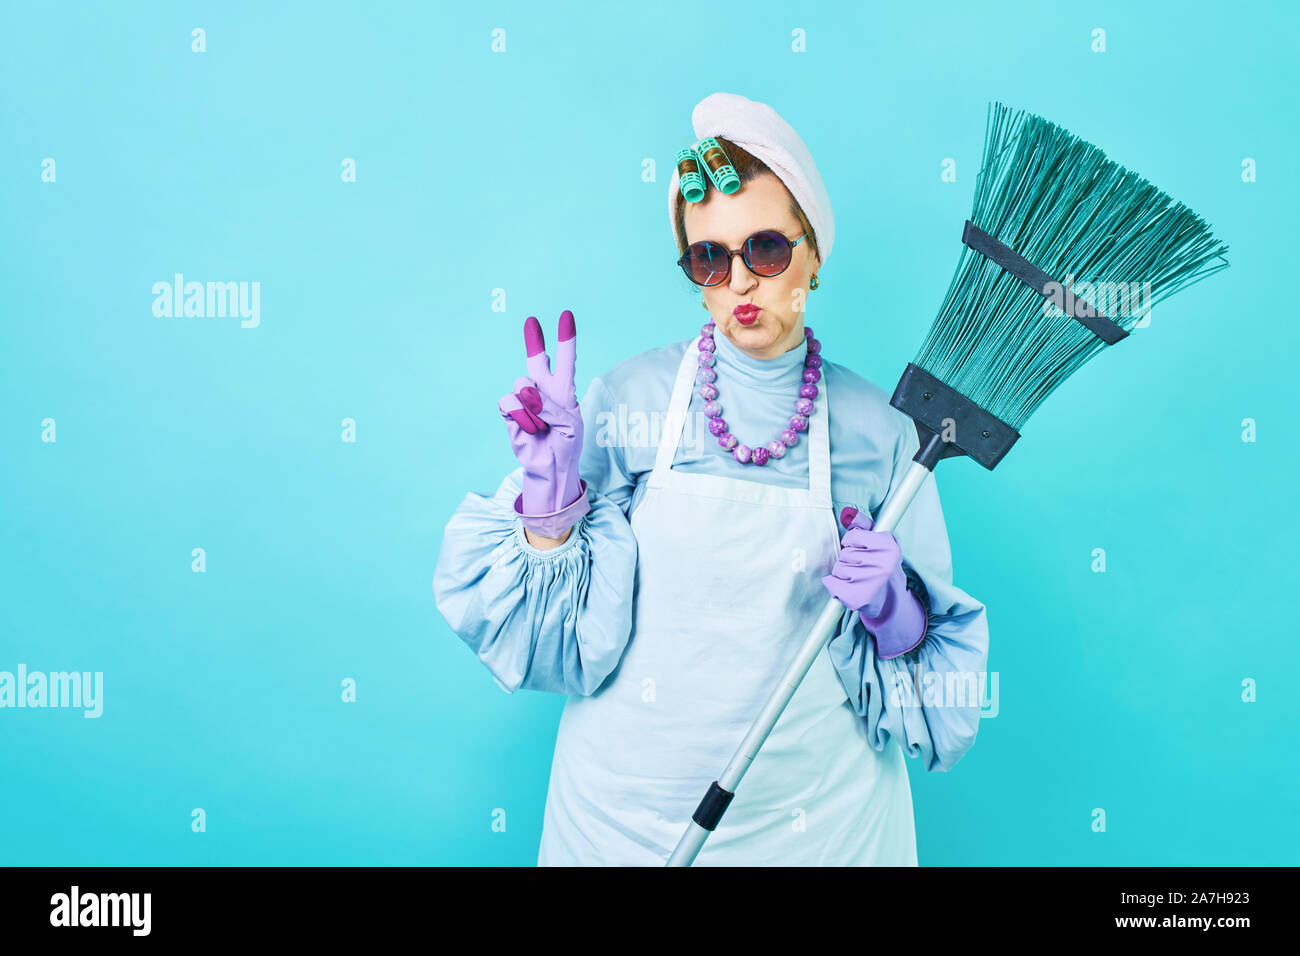 Cleaning Lady Fun. Elderly funny housewife fooling around with a broom. Full body isolated blue. Comical cleaning lady, old woman funky Stock Photo